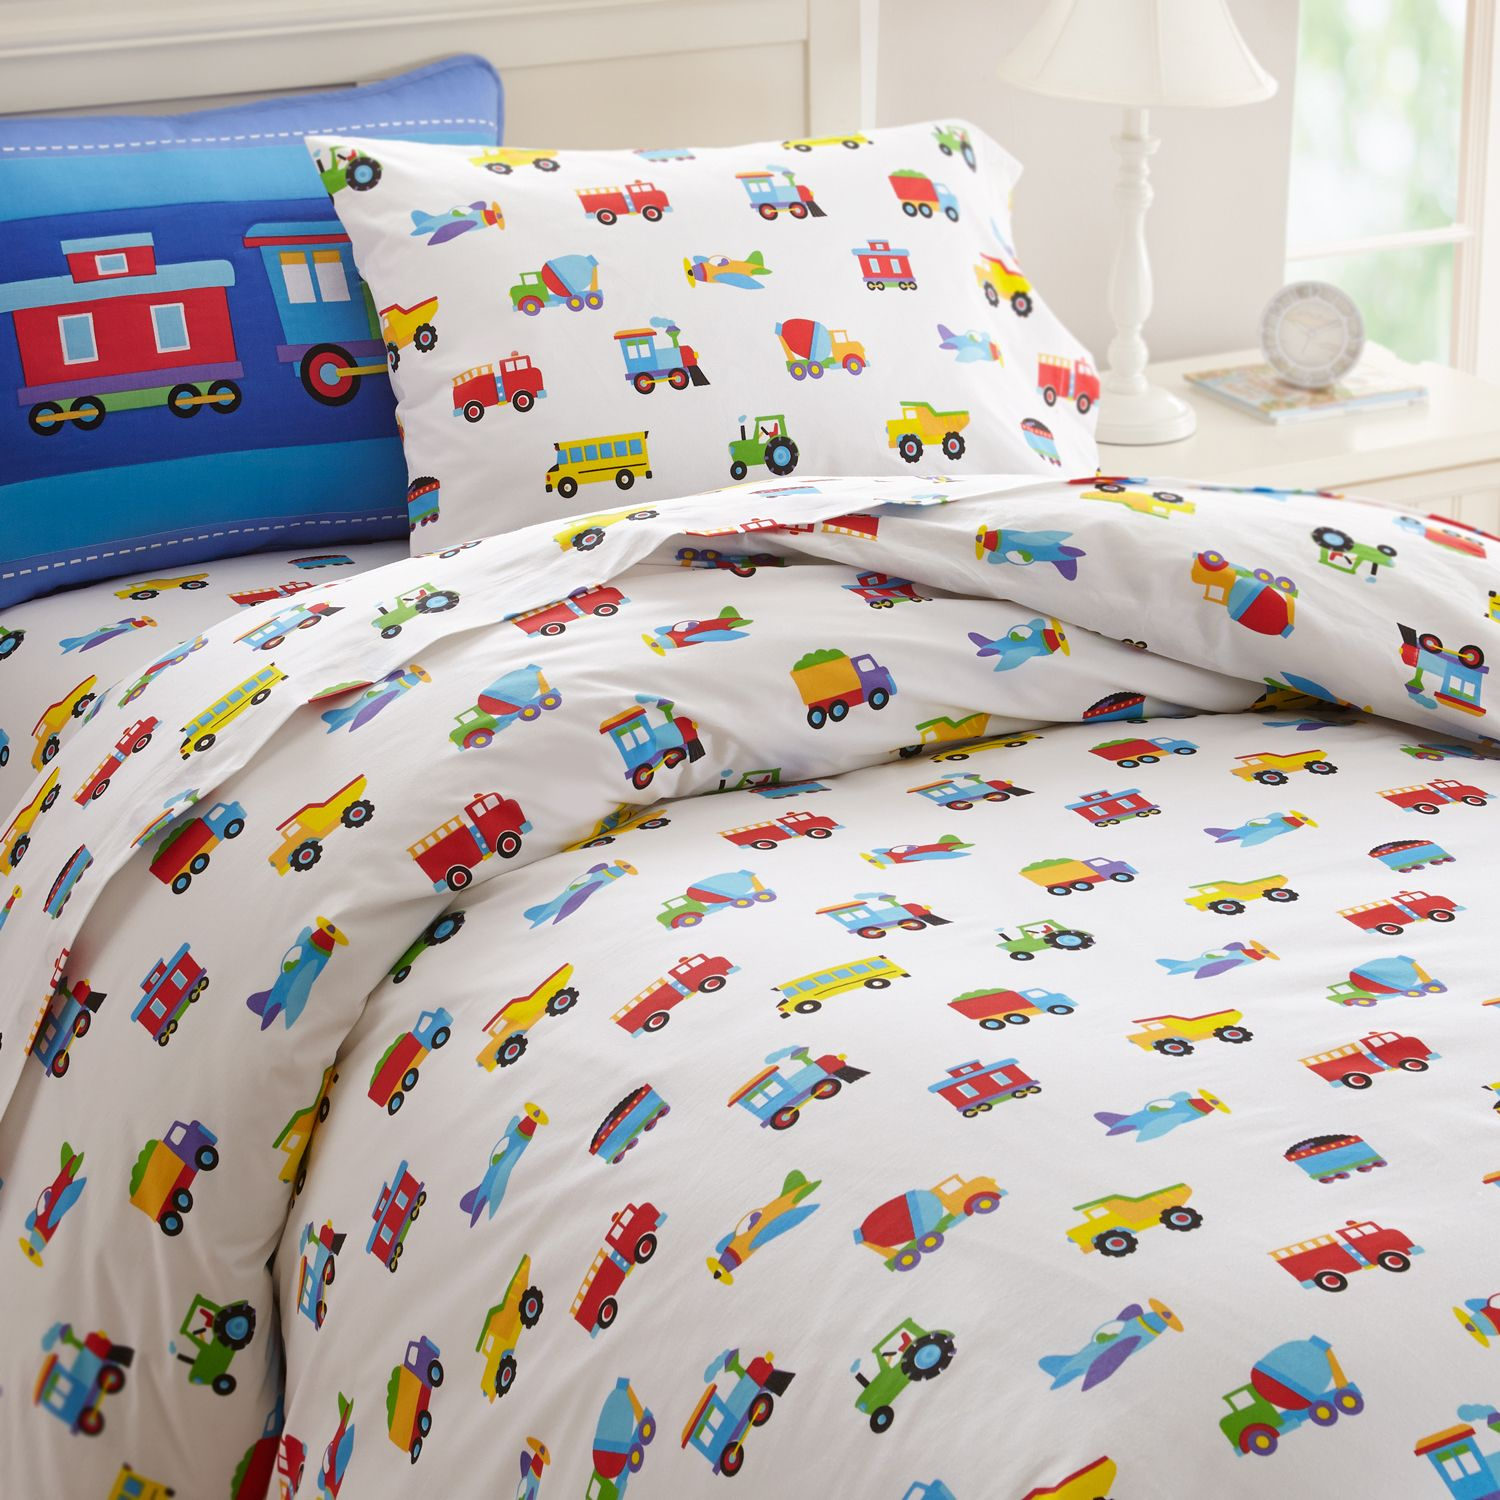 Trucks Airplanes Trains Duvet Cover Bedding Twin or Full ... : car quilt cover - Adamdwight.com